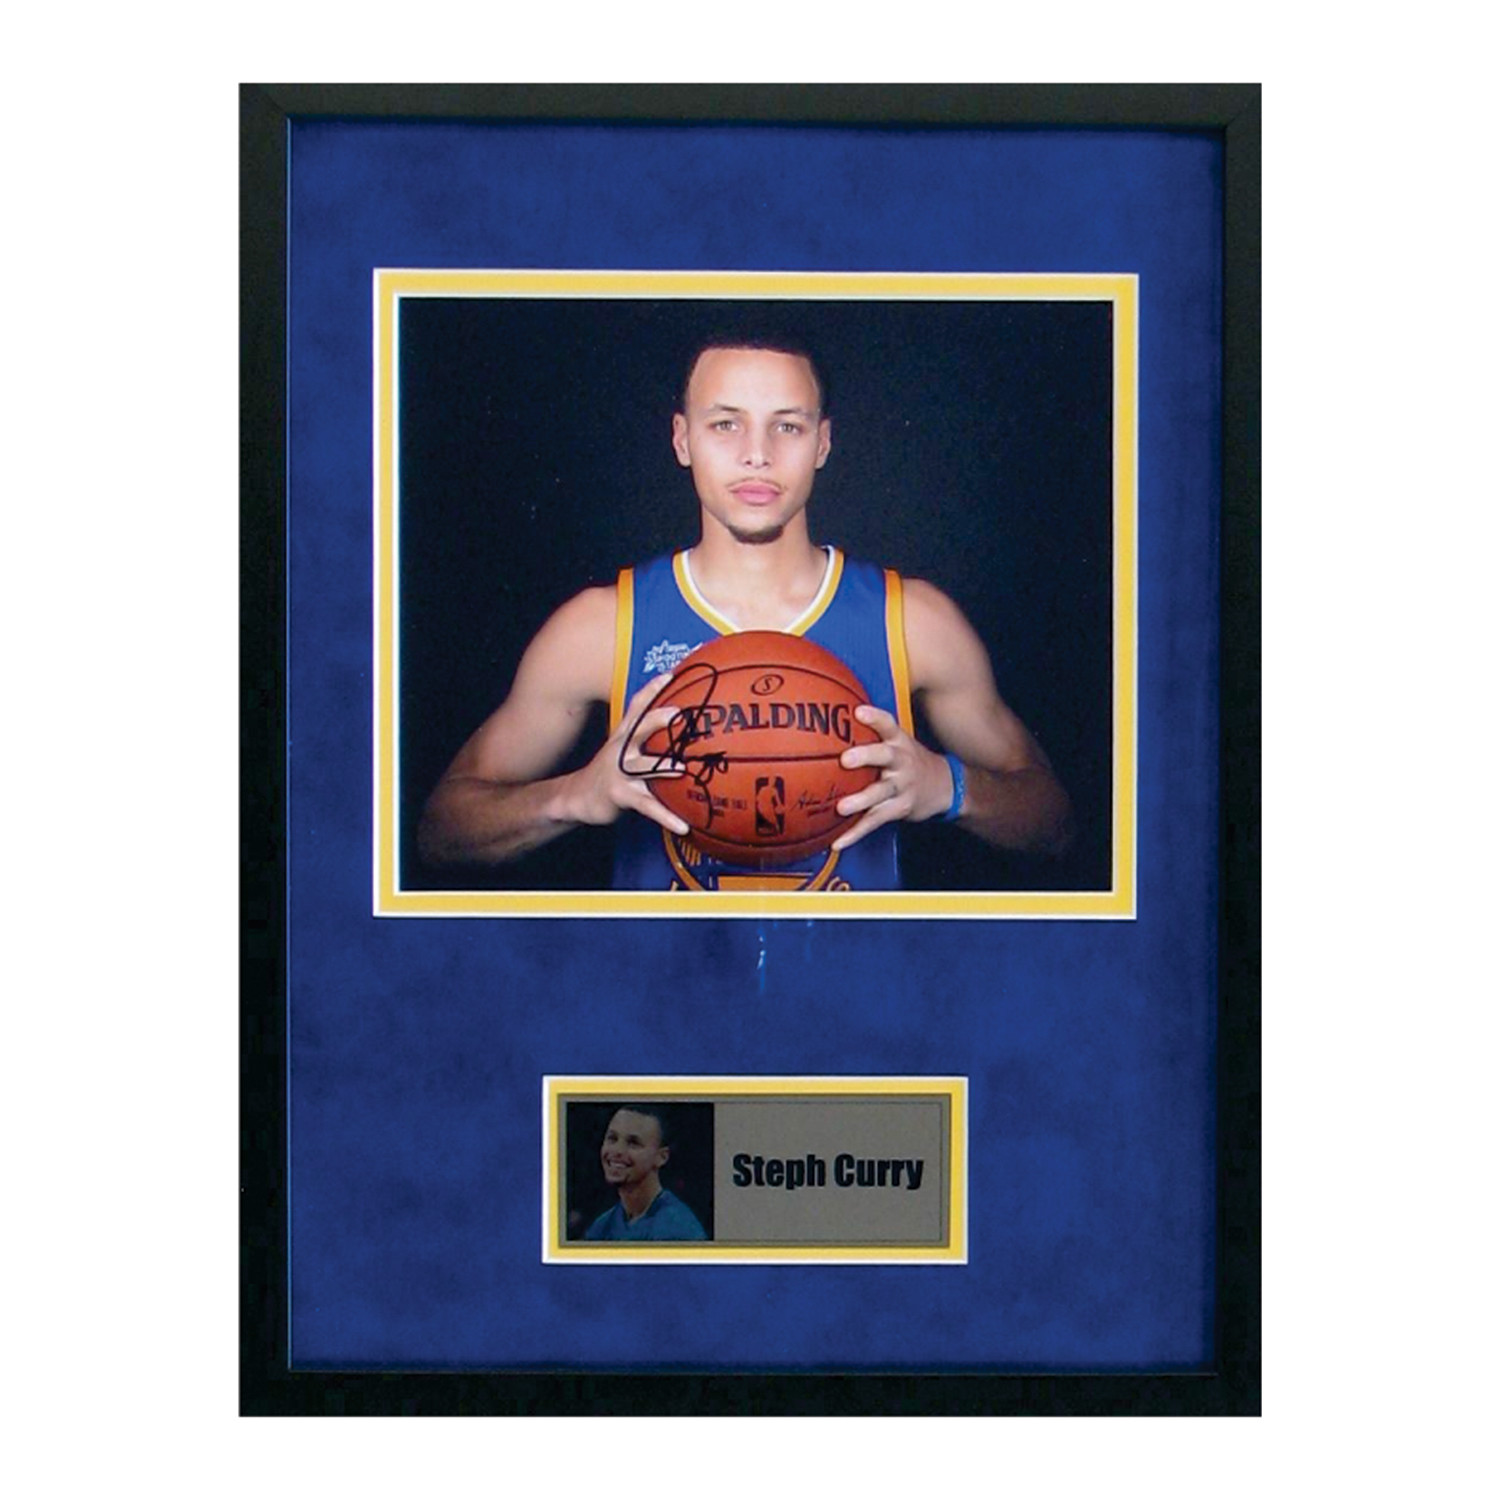 a6930aec9a4 3004c79f9c0c6ebdd4a8032842500218 medium. Shown in. Signed + Framed Photo    Stephen  Curry